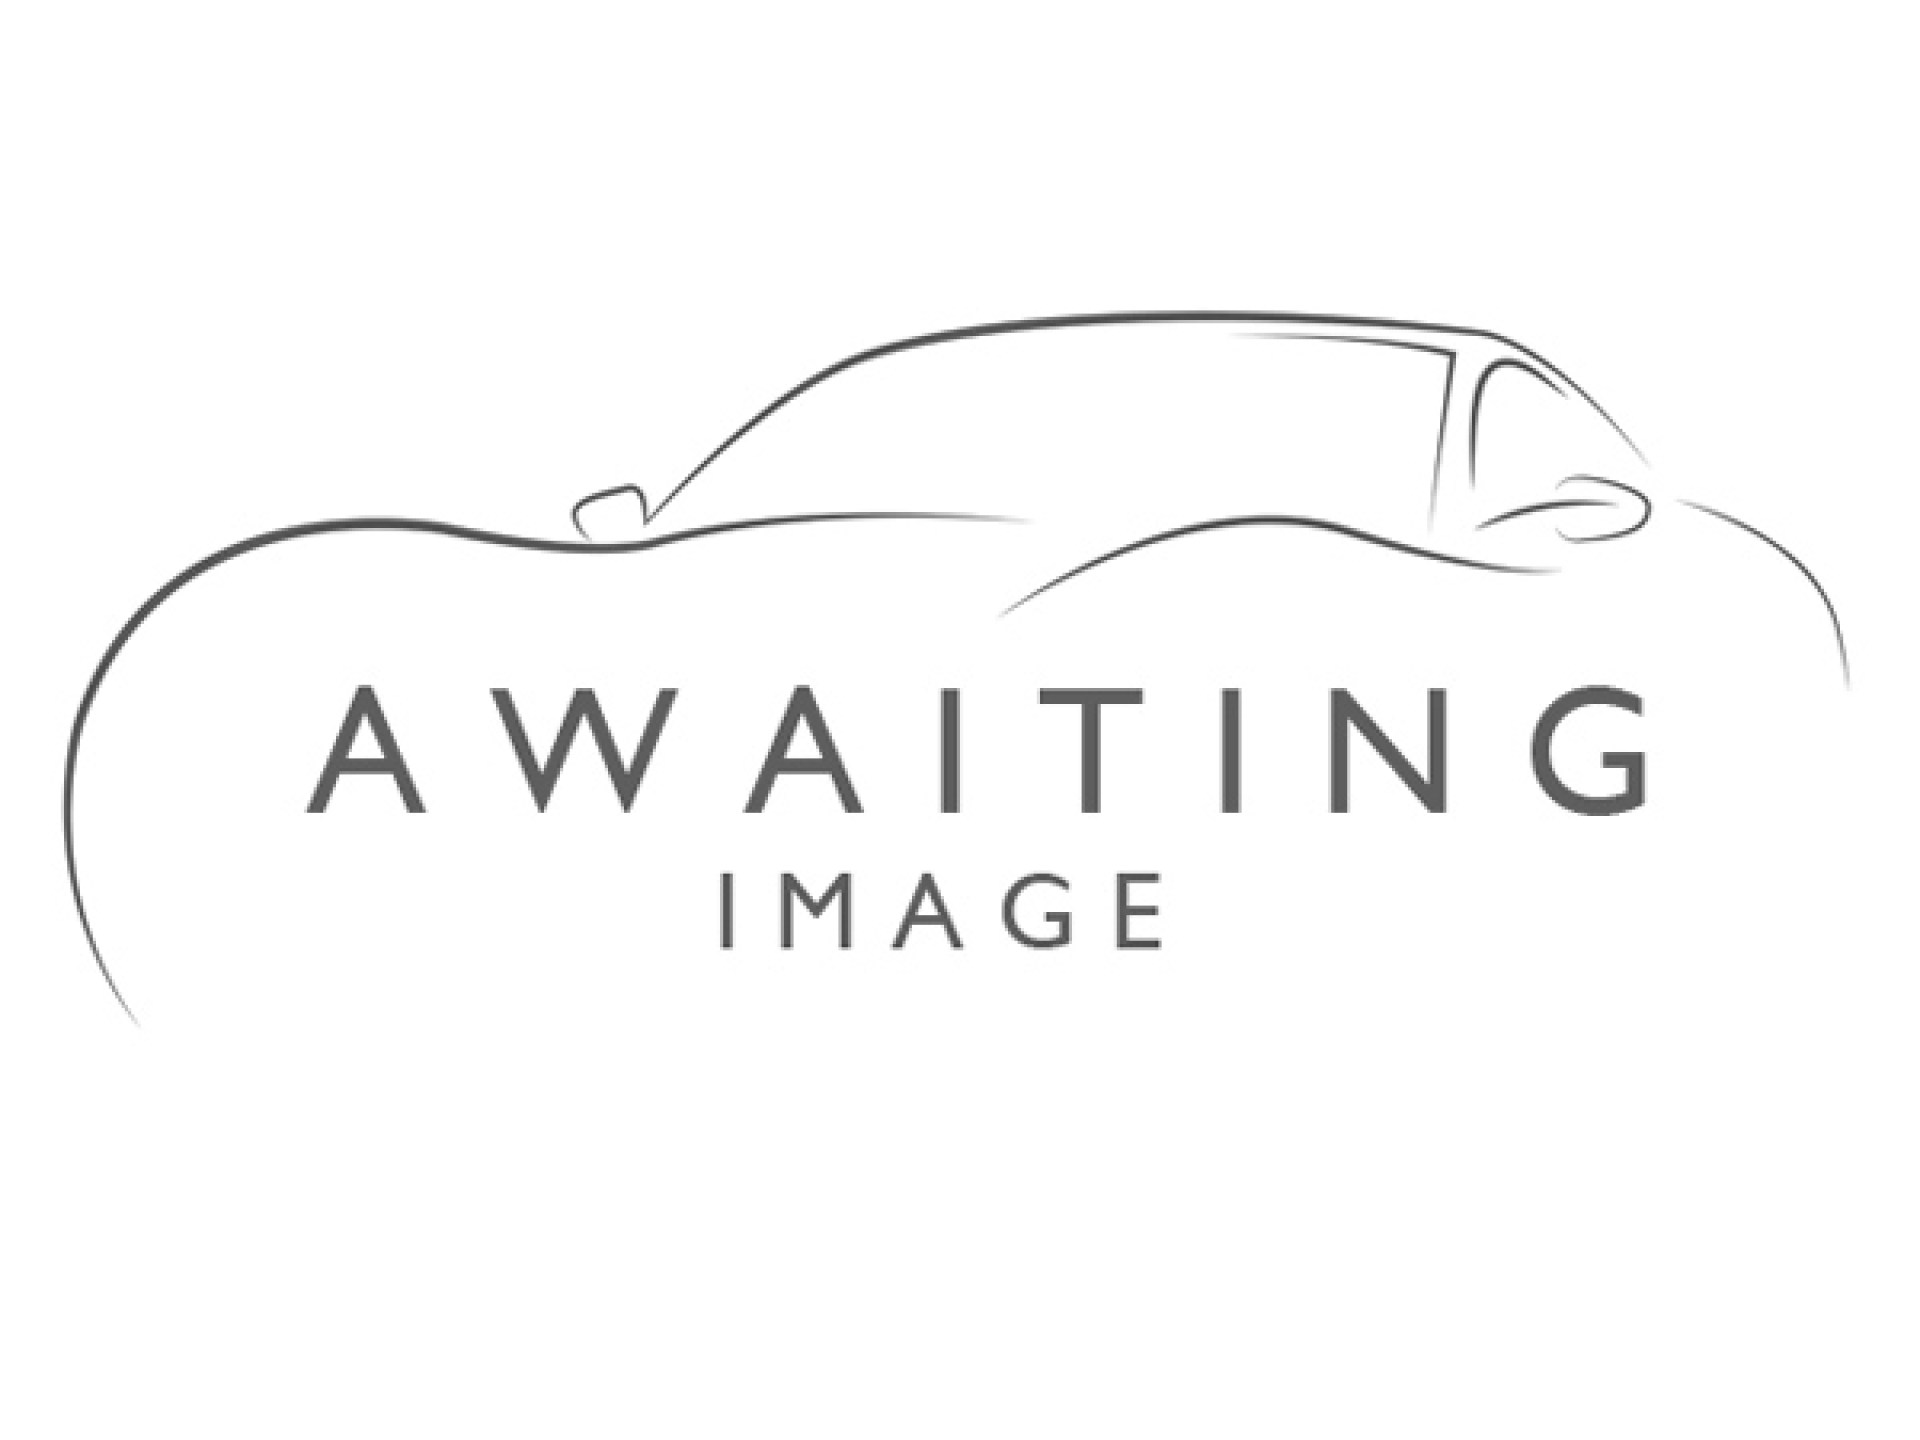 Used Manual Land Rover Range Rover for Sale RAC Cars